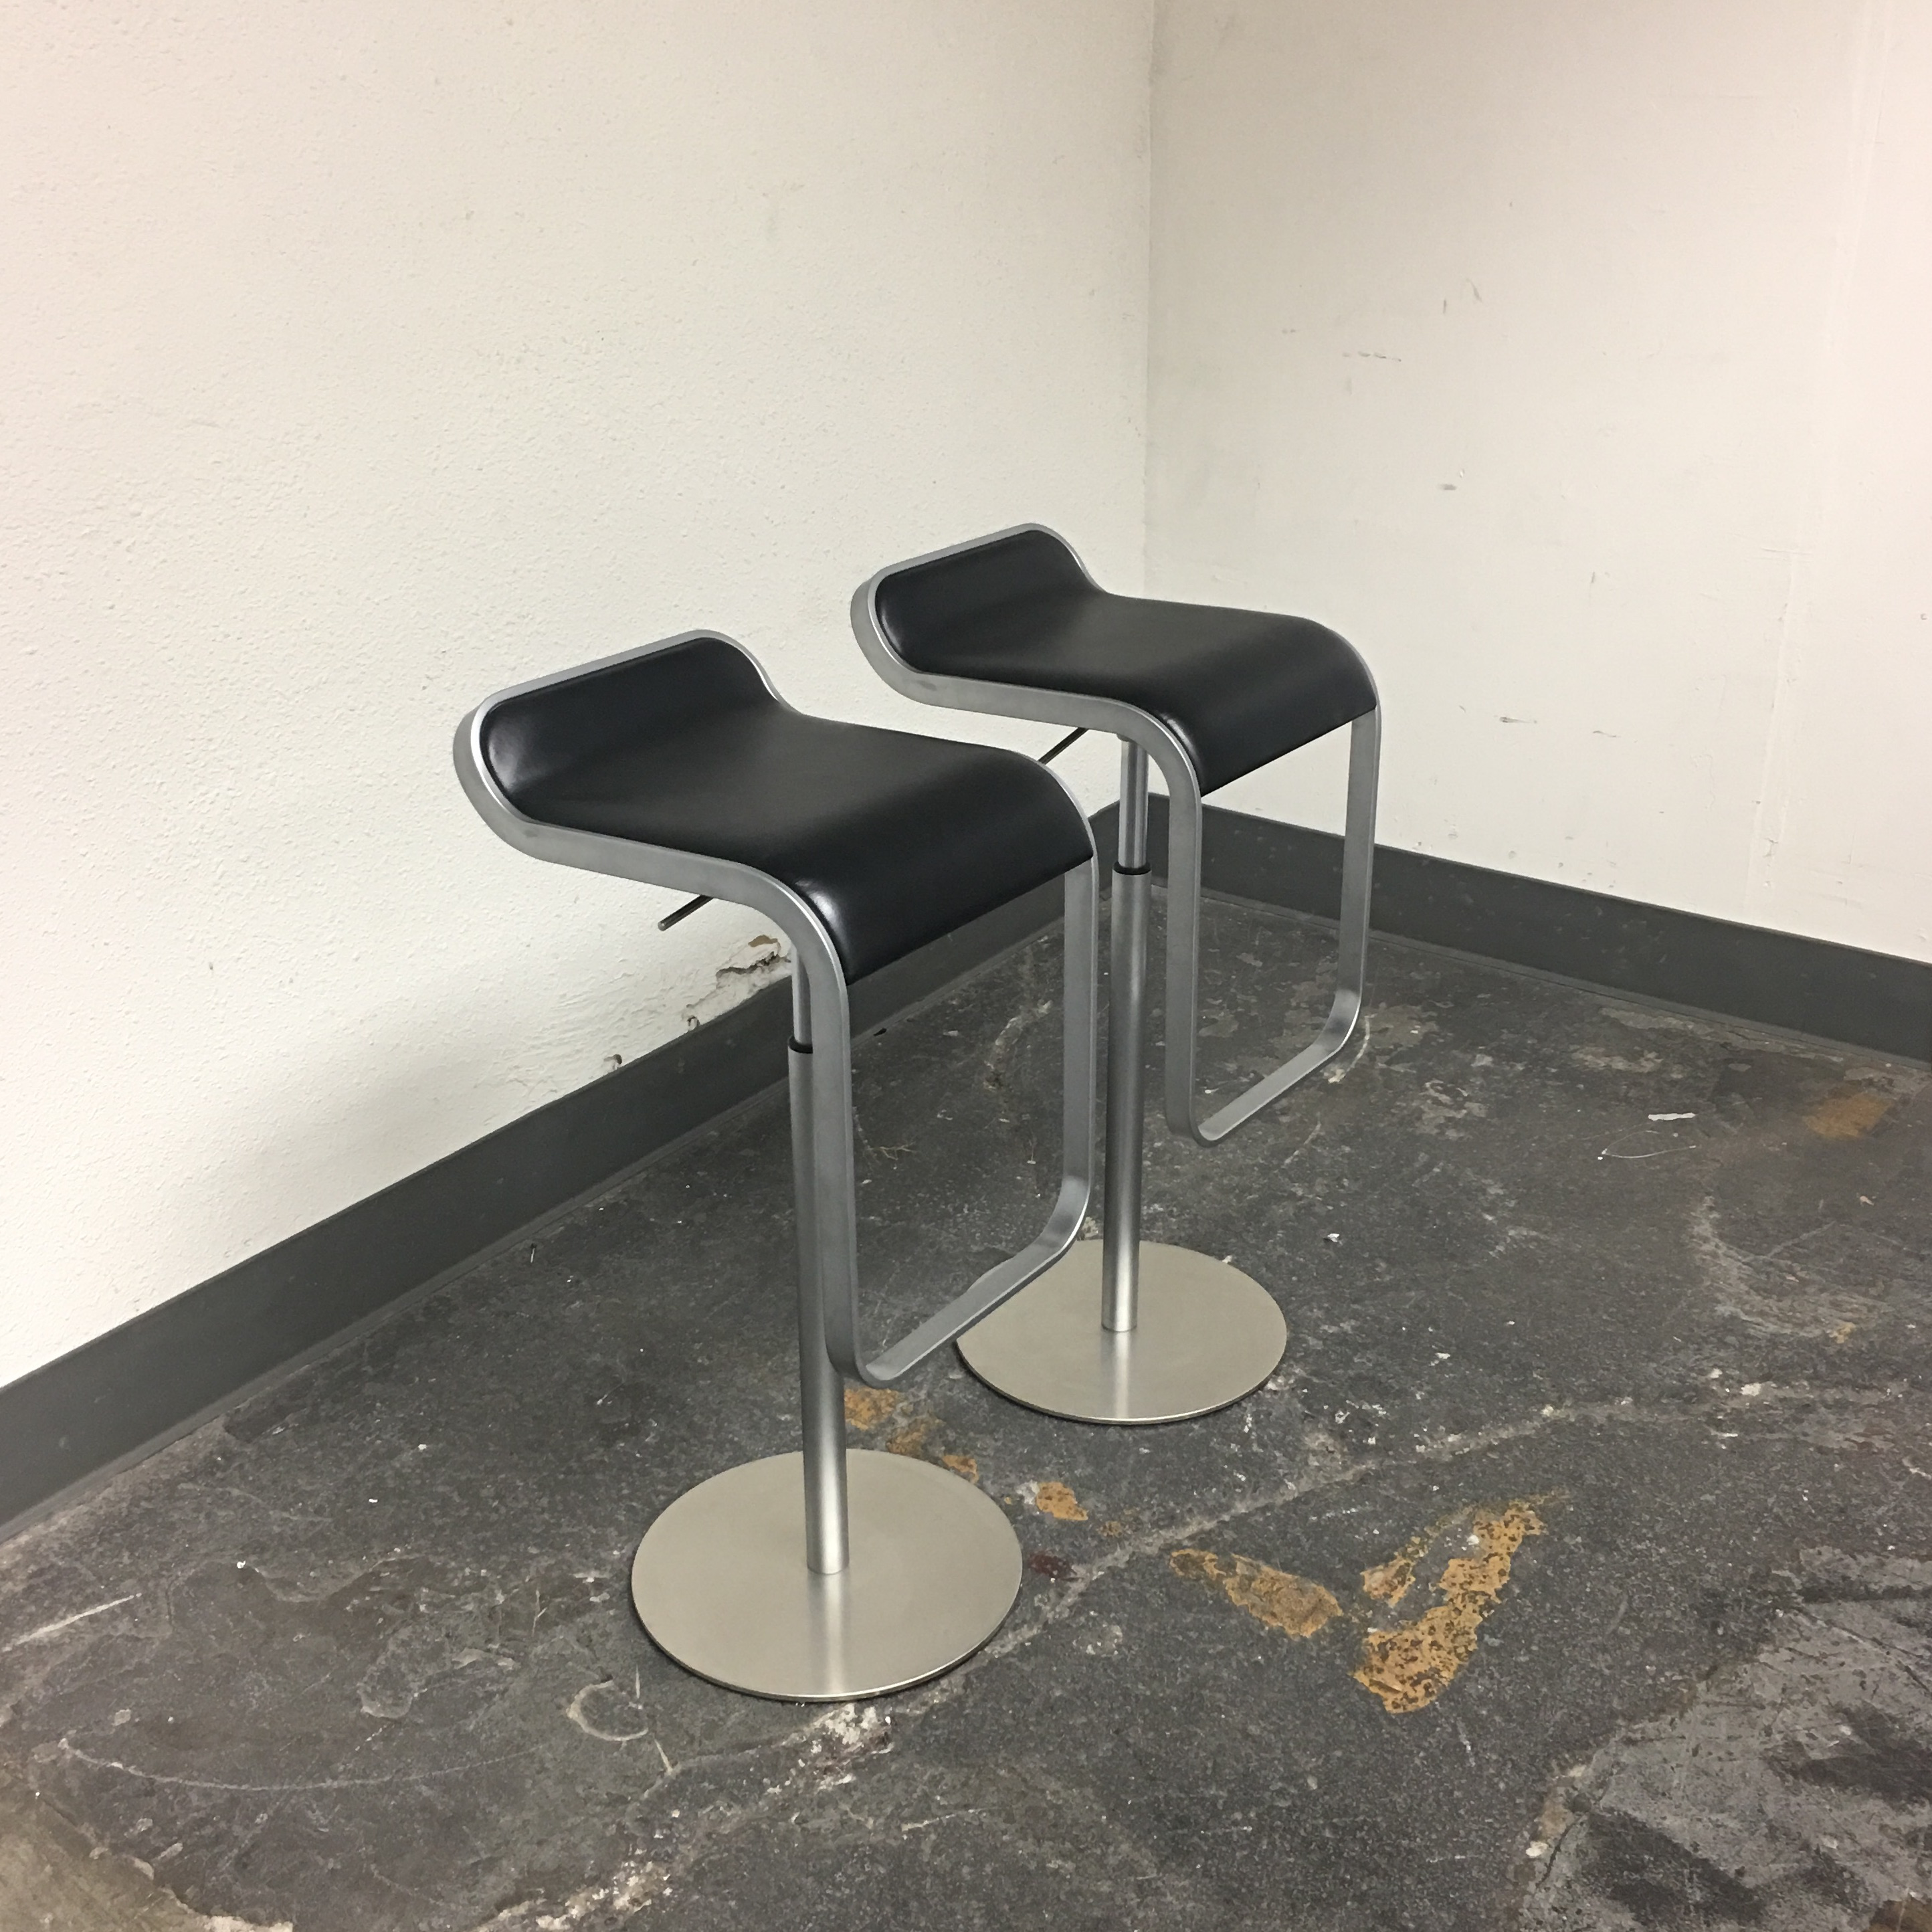 Delightful DWR Lem Piston Stools With Black Leather Seats   A Pair   Image 3 Of 8 Amazing Design